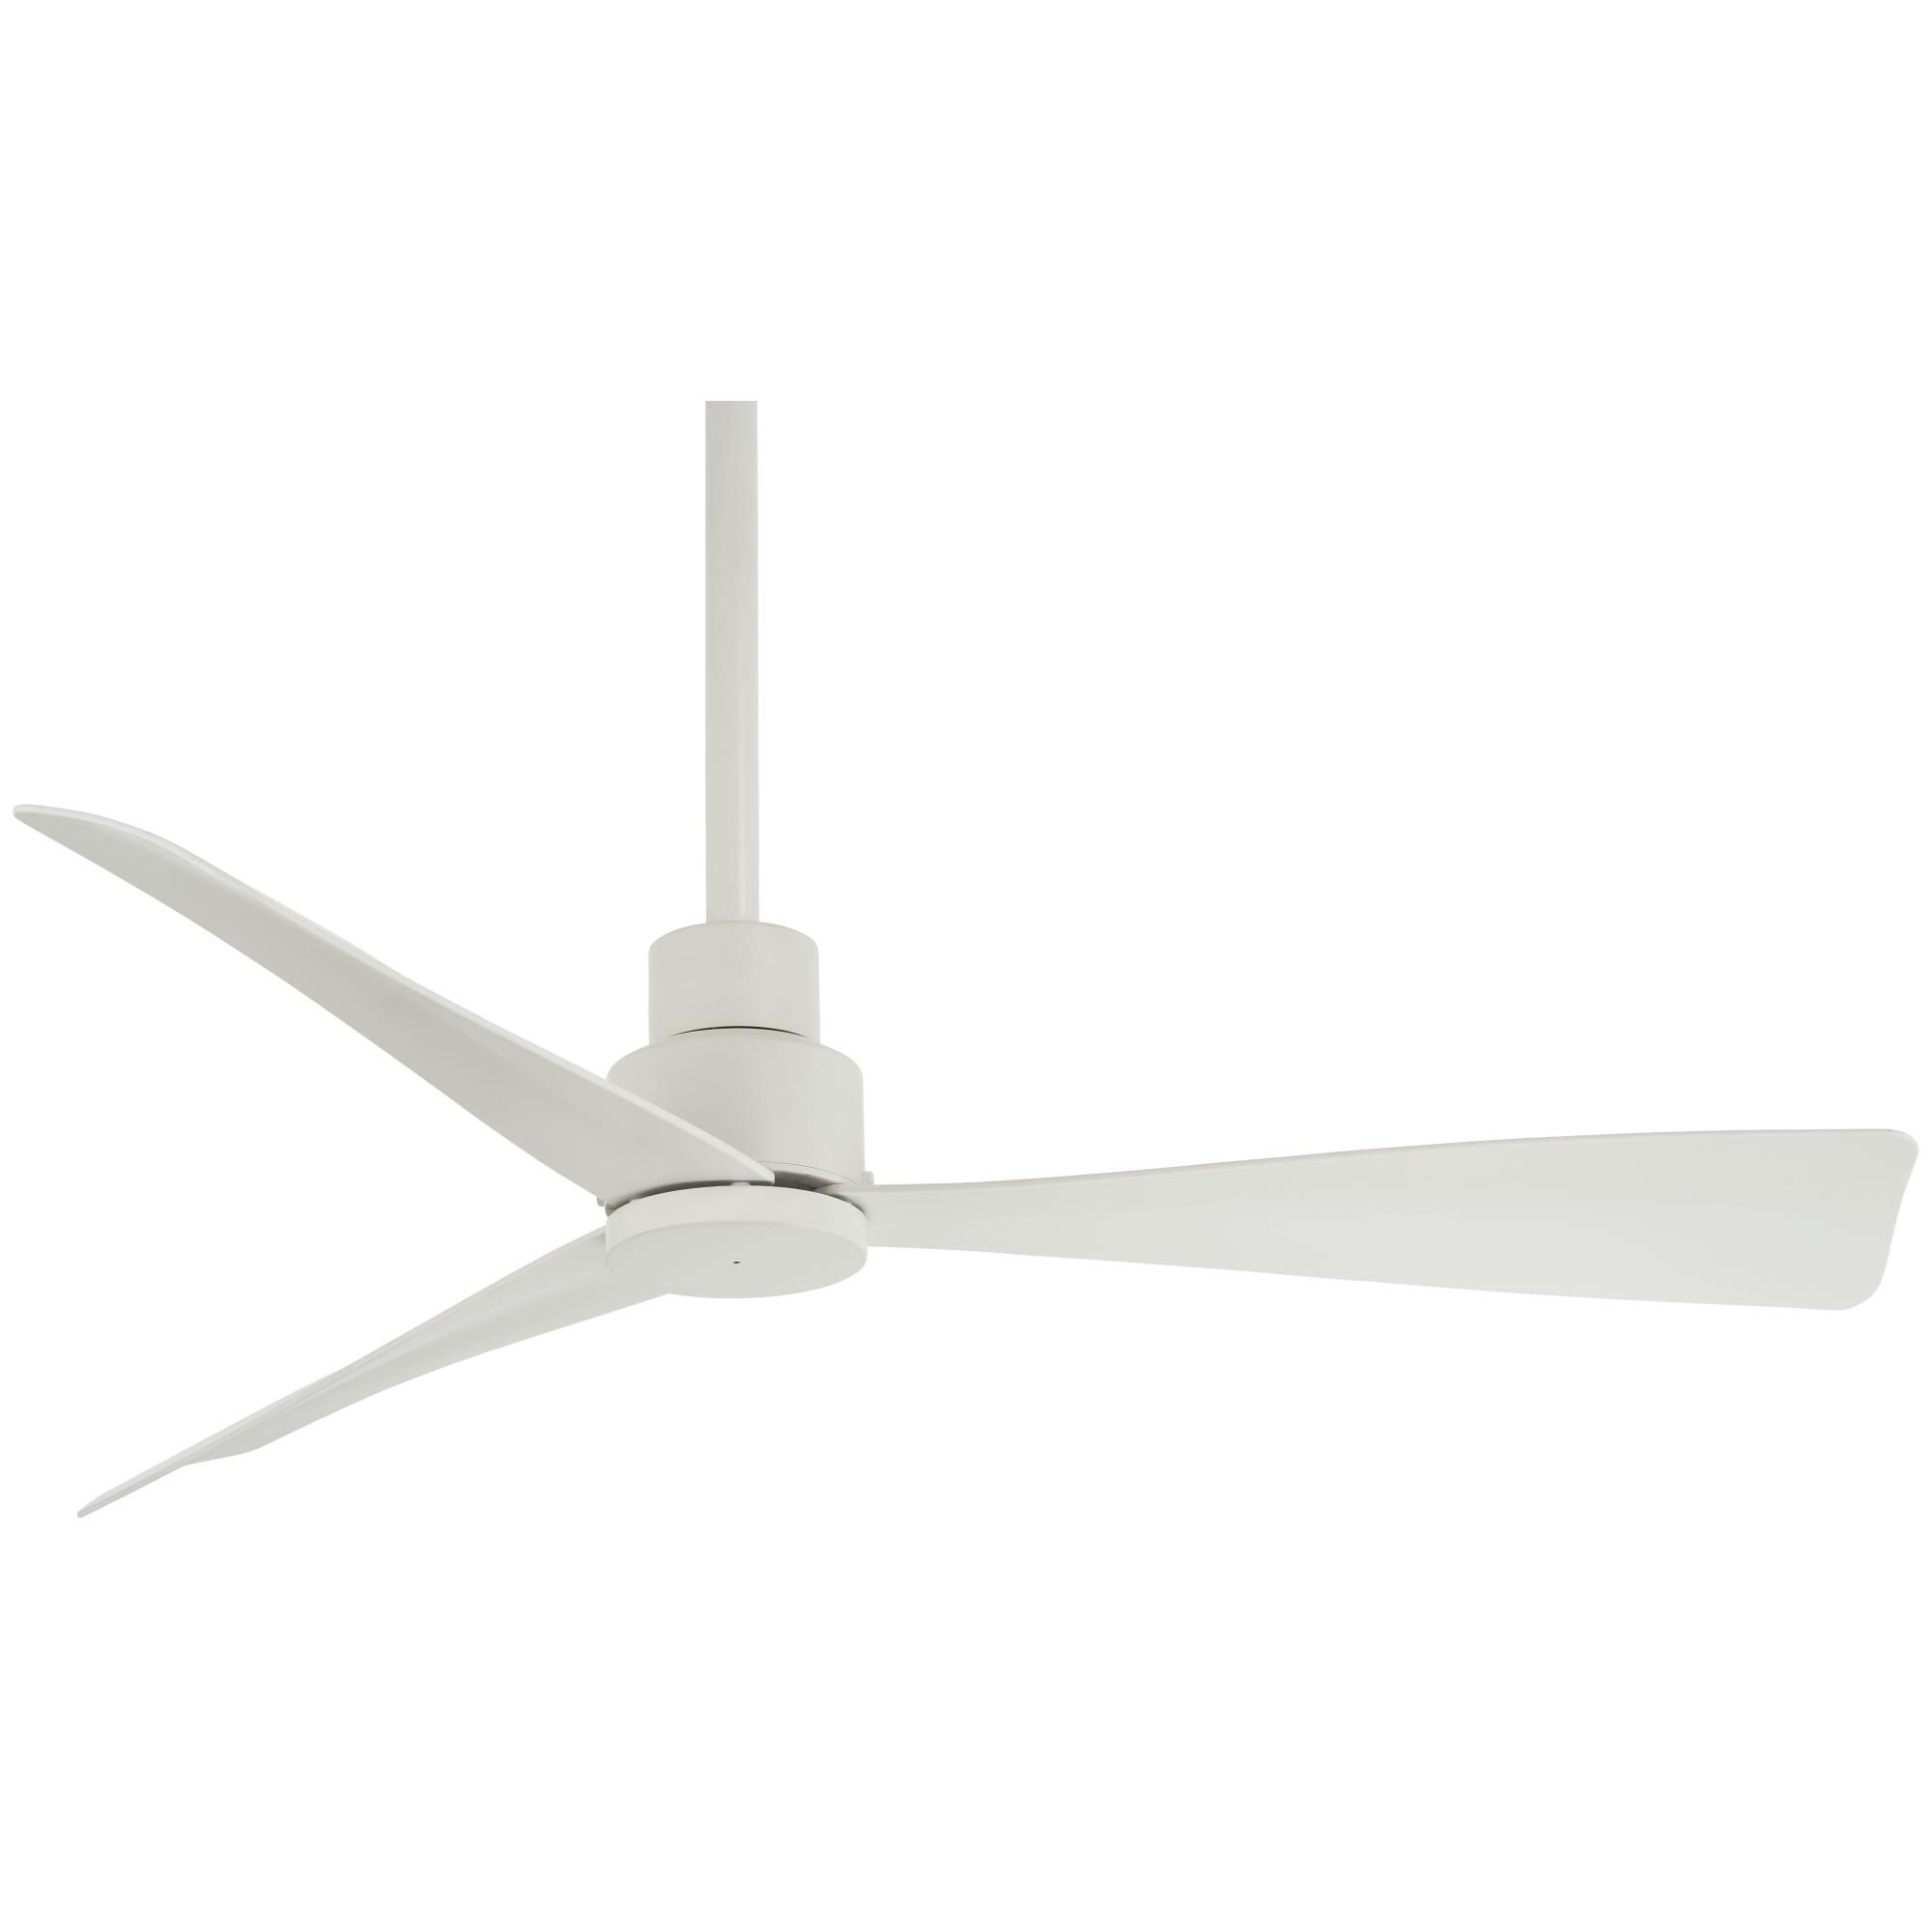 Simple 44 Inch Ceiling Fan Capitol Lighting White Ceiling Fan Ceiling Fan With Remote Ceiling Fan